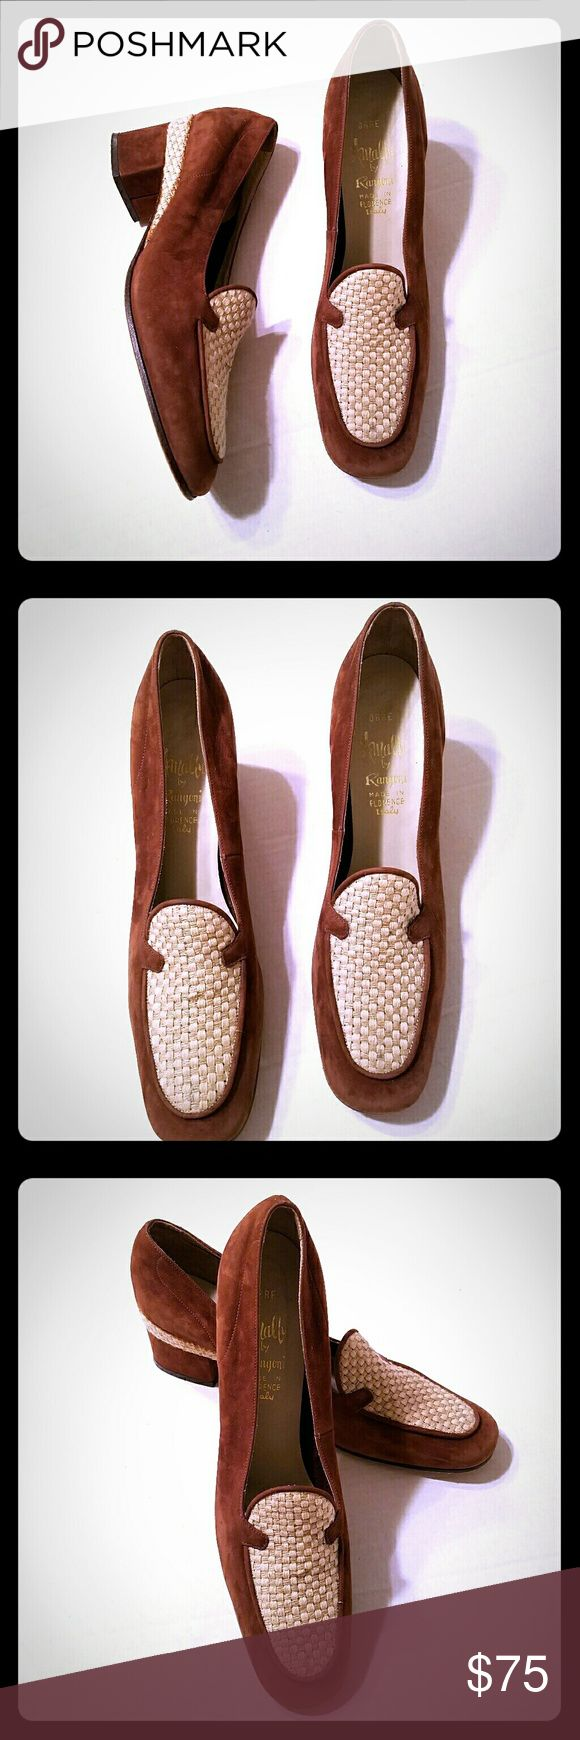 """🎉HP🎉 Sz 9AAA VTG Amalfi Rangoni Italian Loafers Amalfi by Rangoni Made in Italy ORBE Vintage Loafer Heels Brown Suede Sz 9AAA A rusty brown Suede with neutral woven accents Small mark on heel as shown  Size 9AAA NARROW  Heel height 1 3/4""""  See pictures for more detail Amalfi  Shoes Heels"""